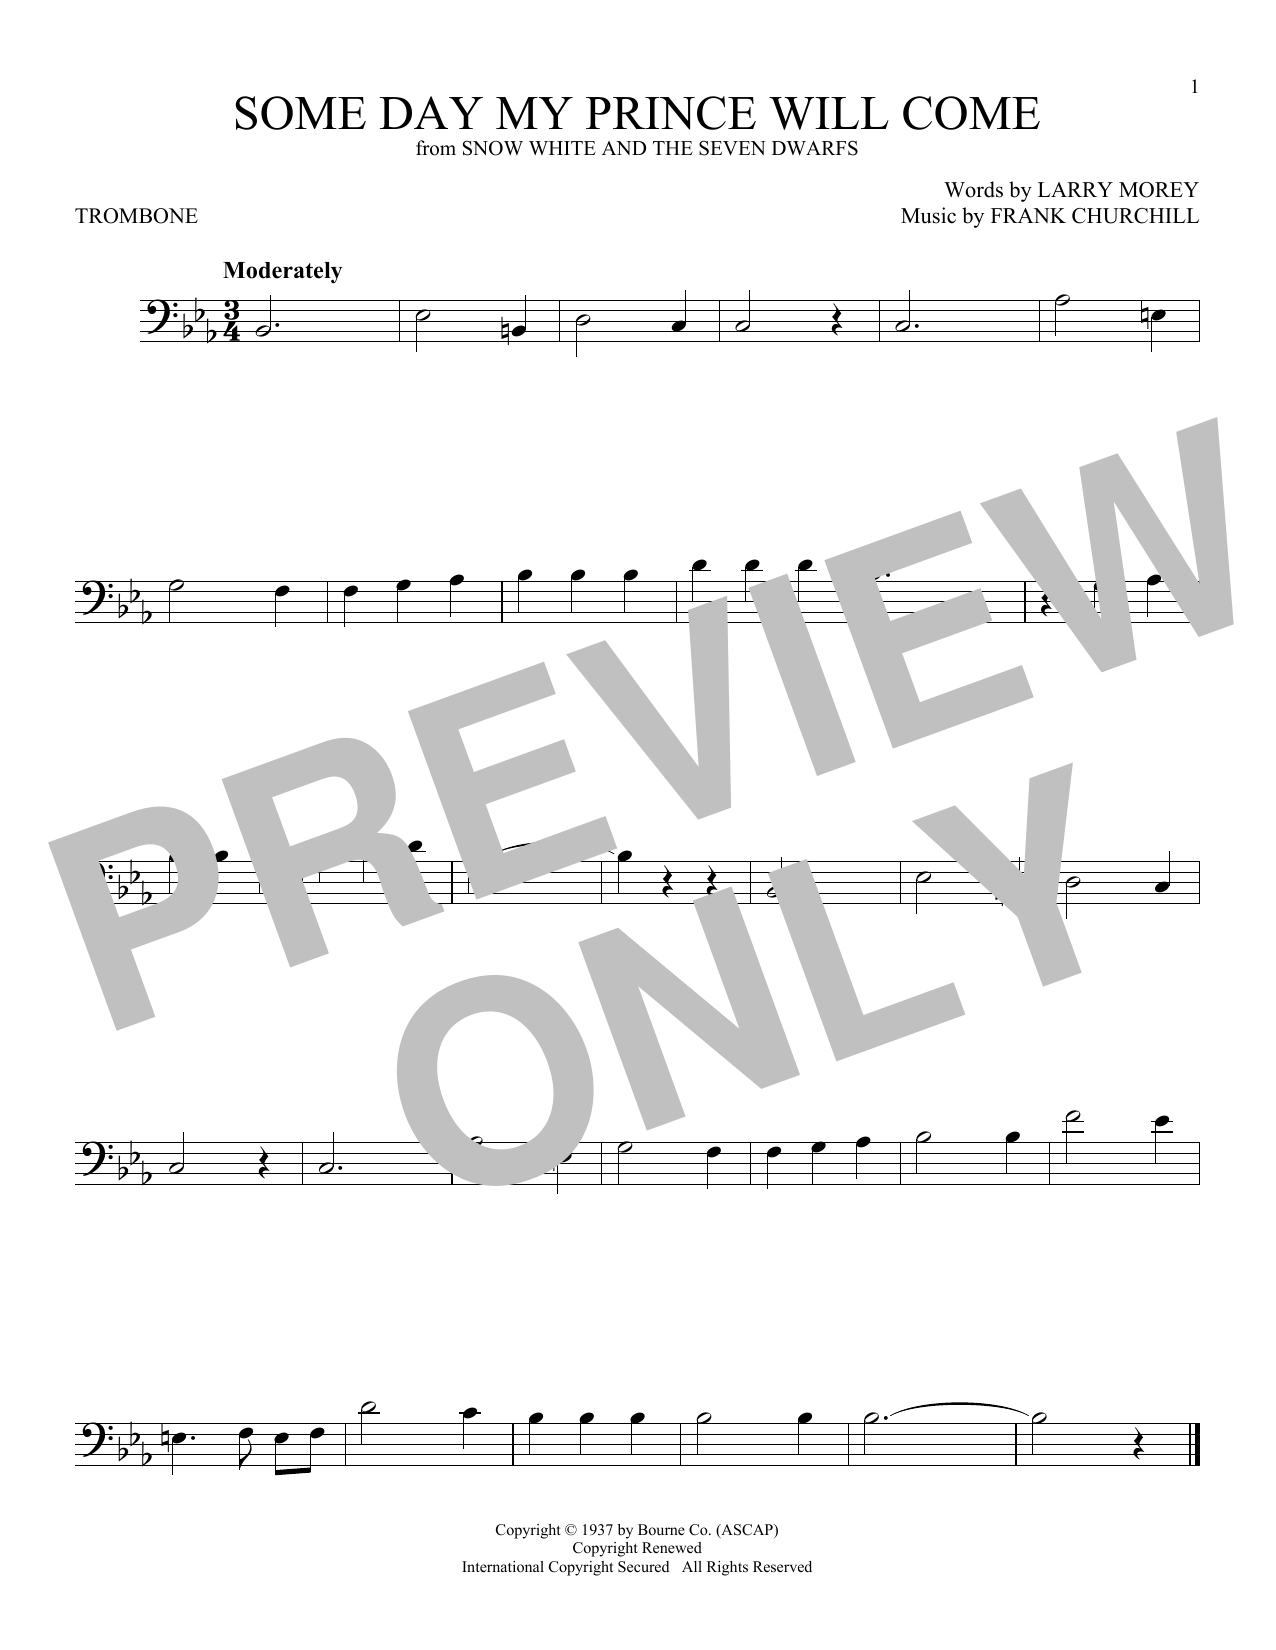 New Piano Sheet Music On Modern Score Frank Churchill Some Day My Prince Will Come Partition Trombone 2 00 Partitio Partition Guitare Chorale Guitare